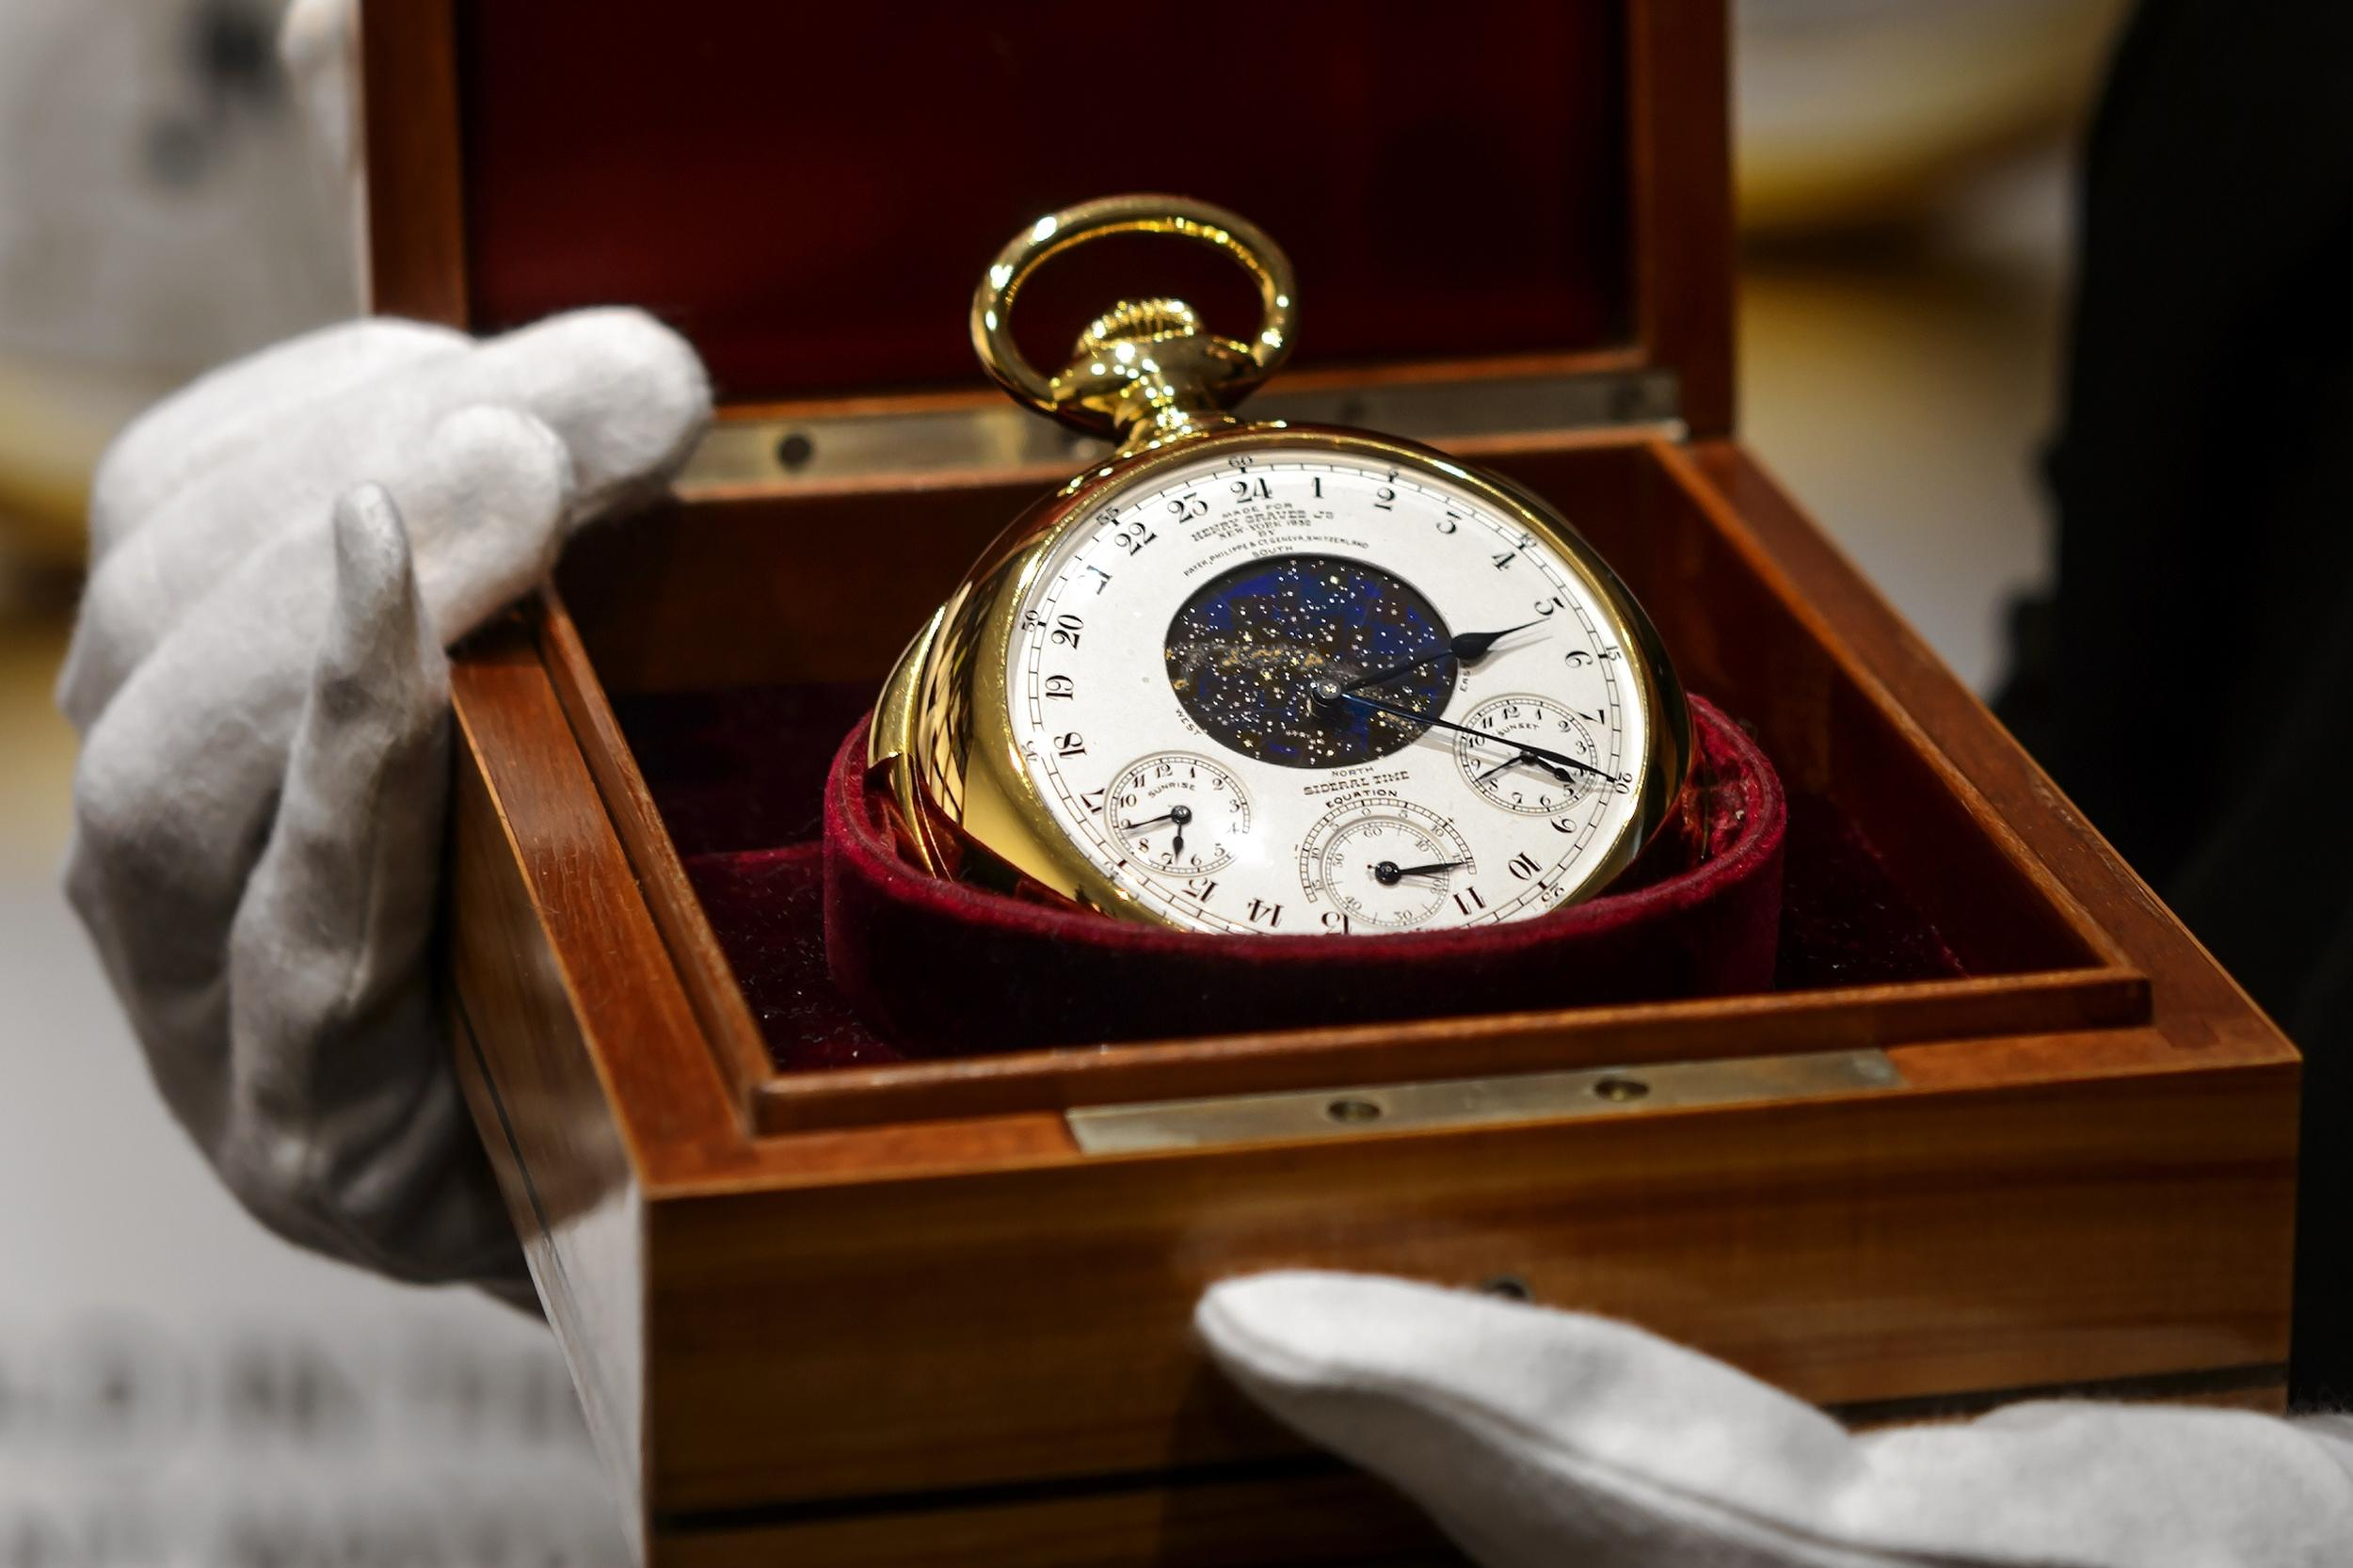 <p>The most expensive watch ever sold at auction fetched just under $24 million in November 2014. The gold pocket watch was made by Patek Philippe, and is the most complex ever made without the use of computer technology.</p>  <p>The Henry Graves Supercomplication was commissioned in 1925, and took eight years to make.</p>